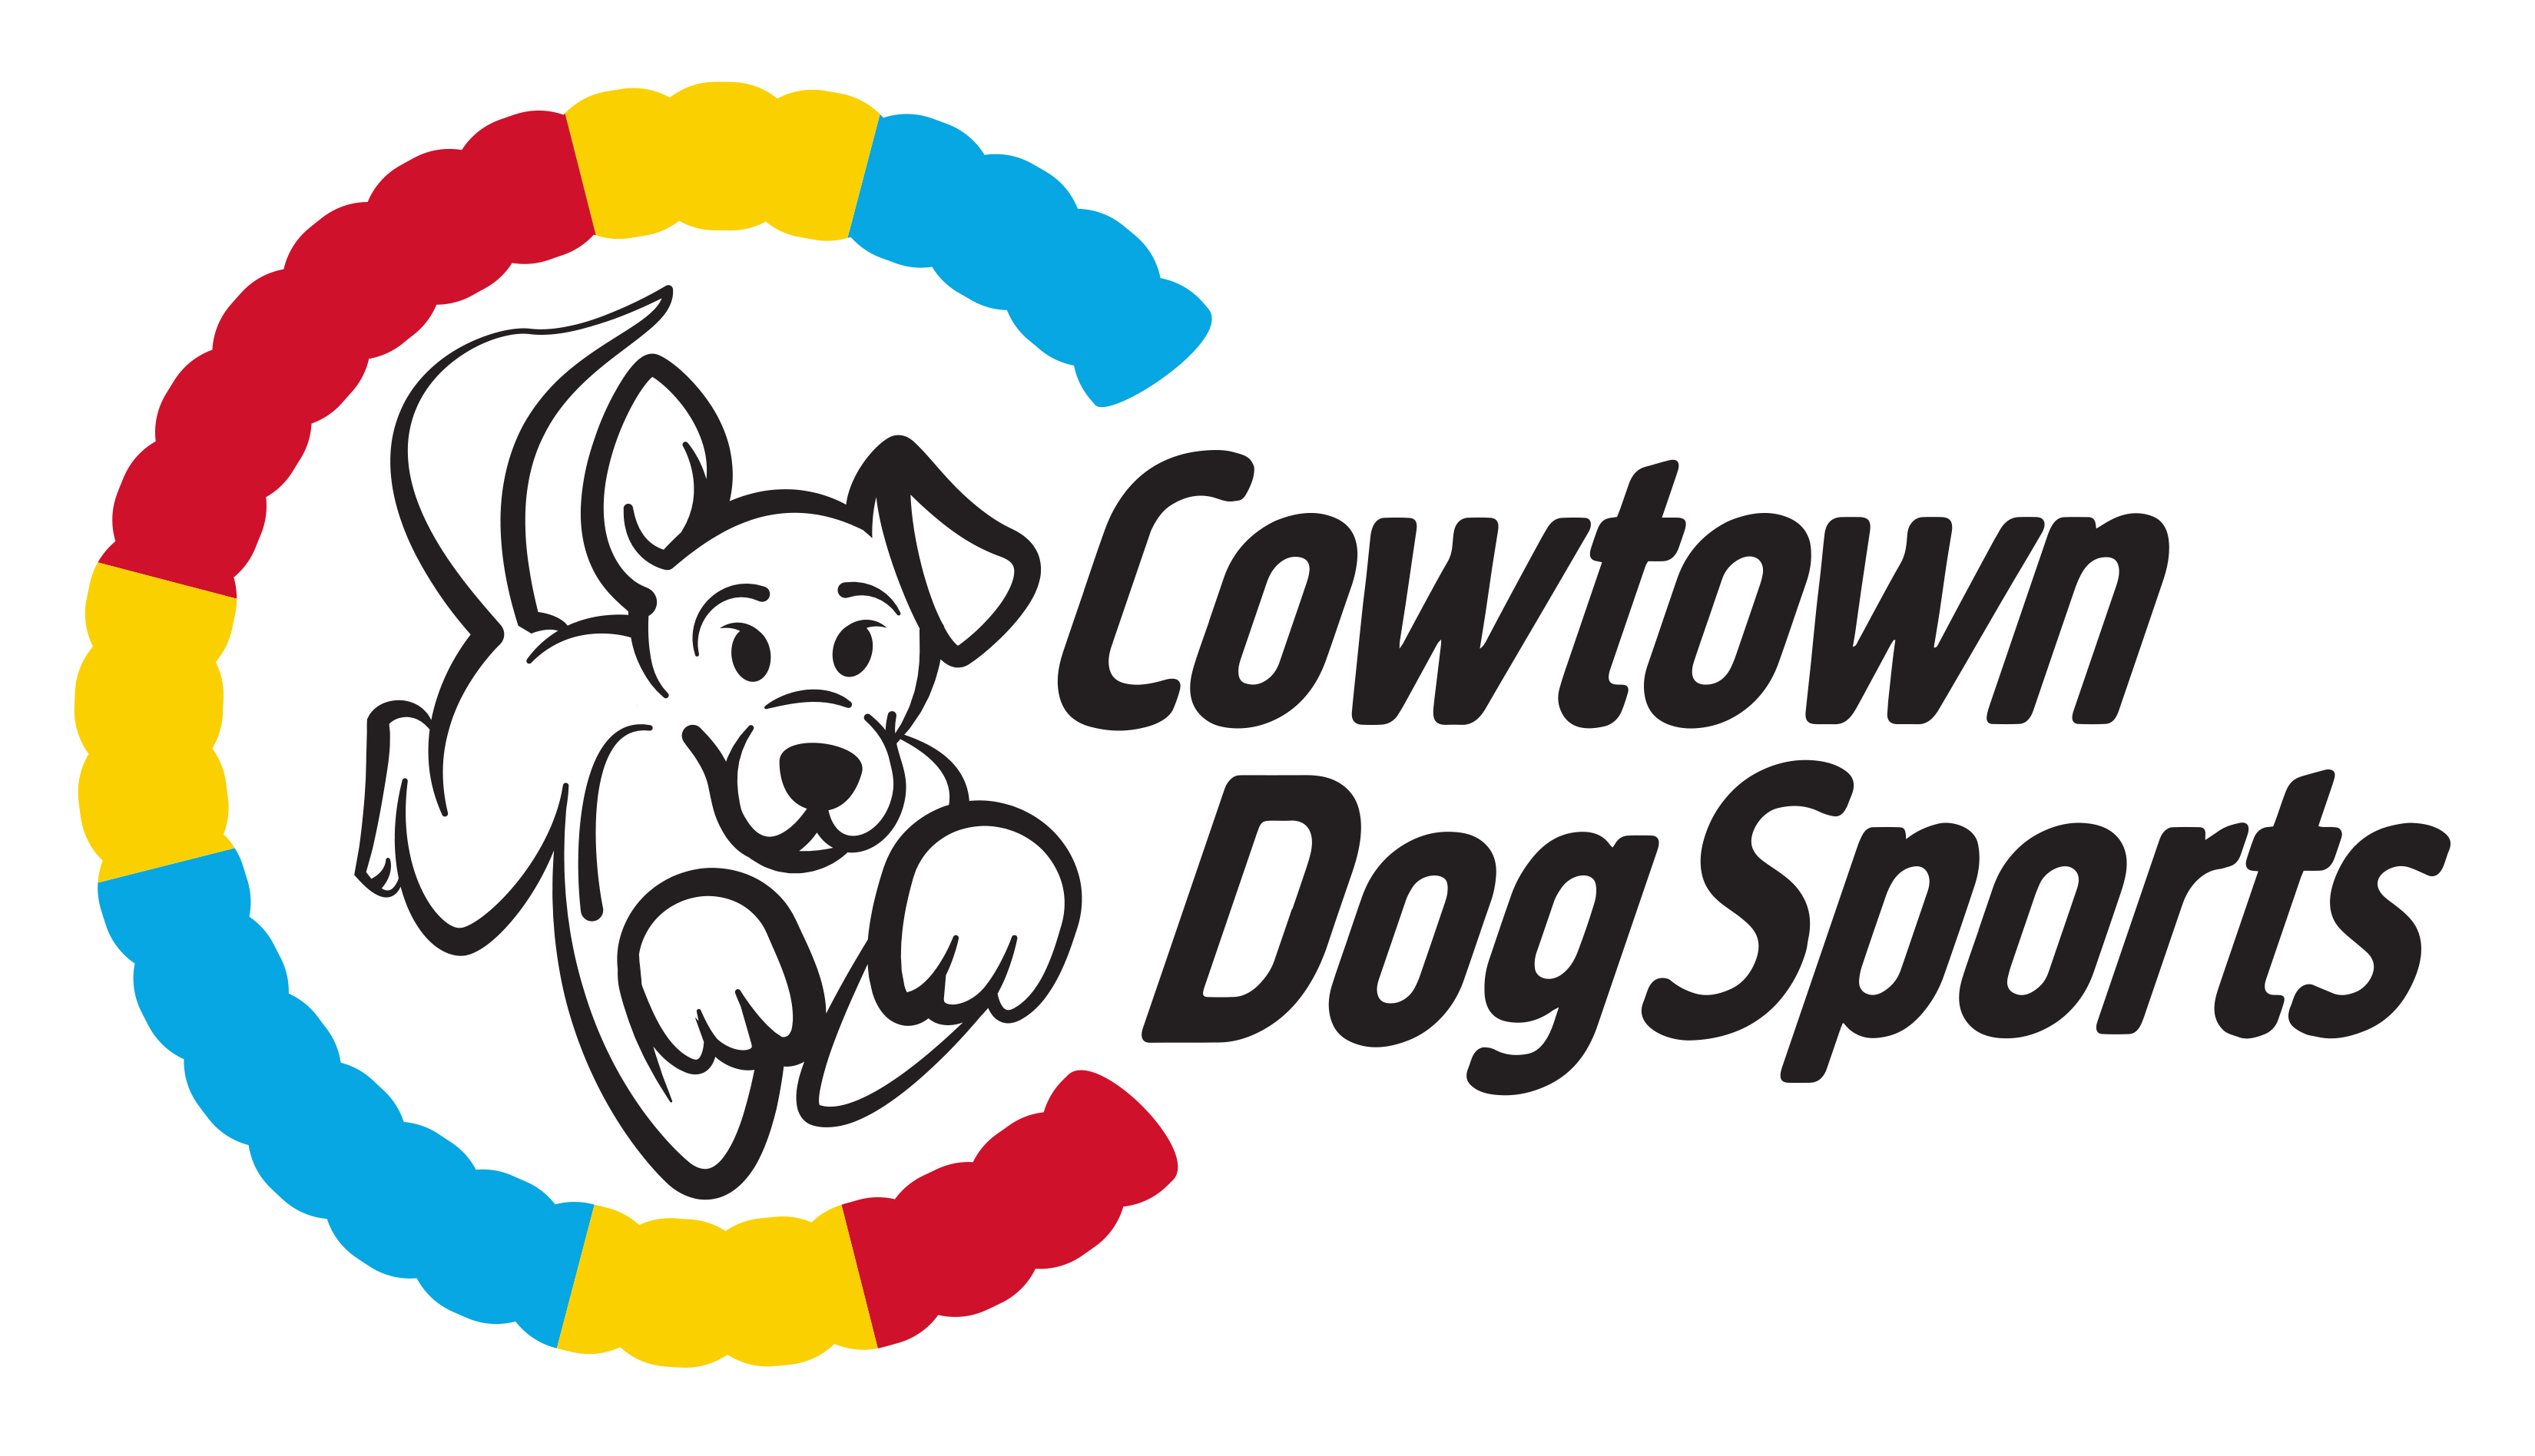 CDS Dogs - Cowtown Dog Sports